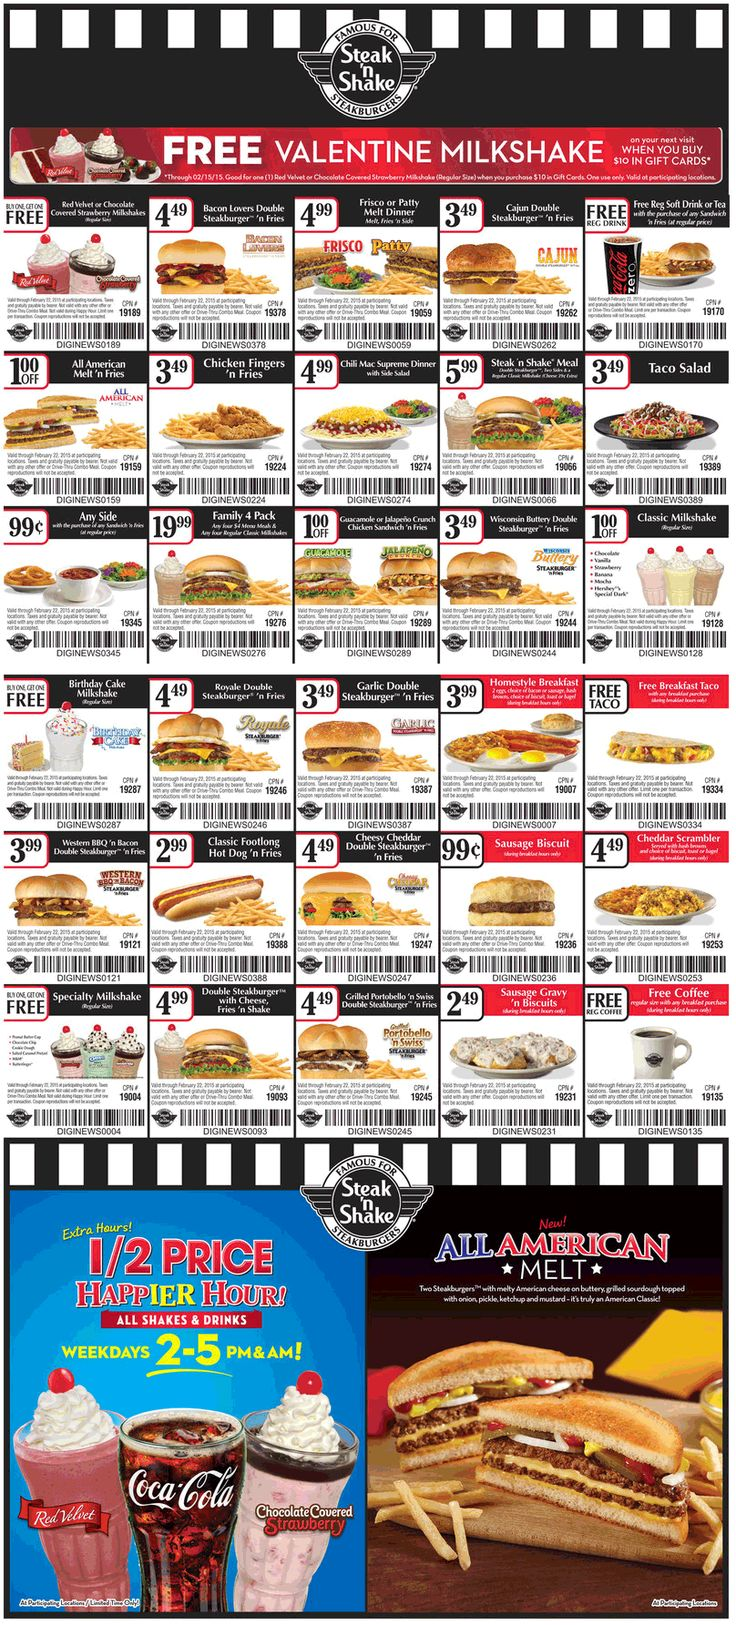 Steak n shake coupon steak n shake promo code from the coupons app second shake free free coffee more at steak n shake restaurants february